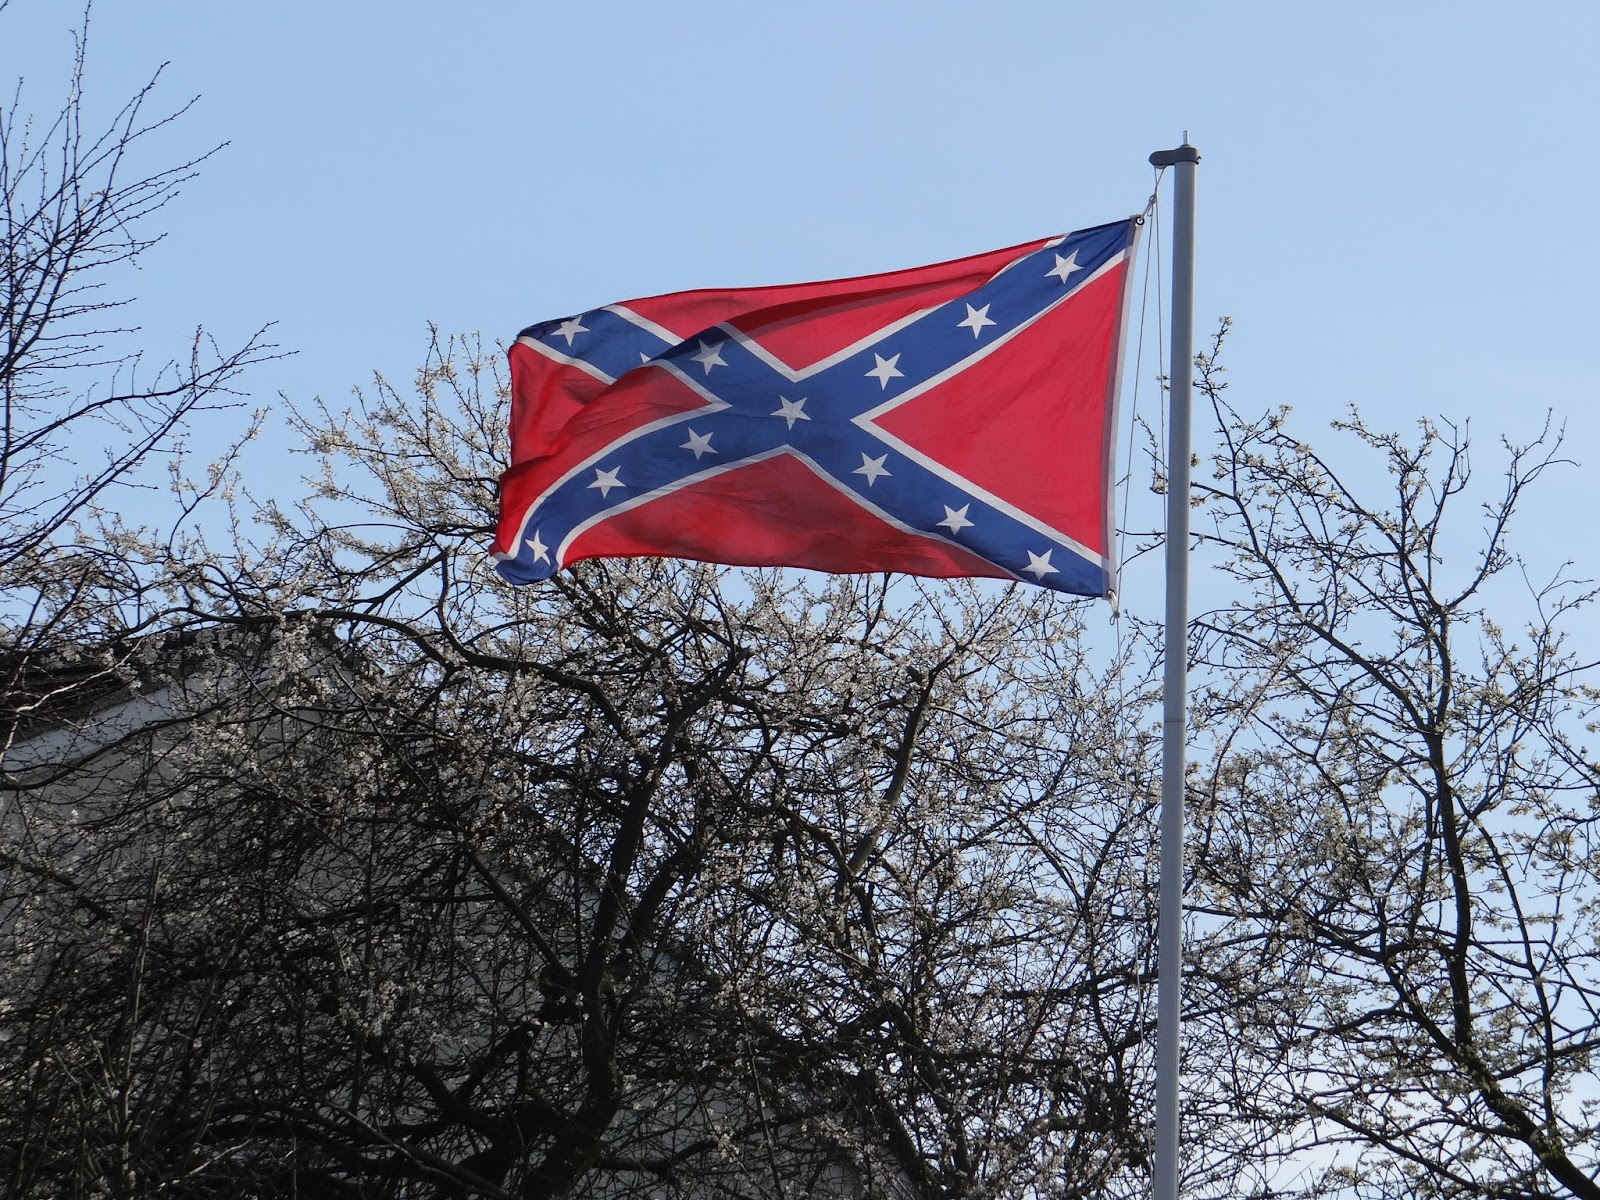 I wish I was in Dixie (OK, wrong song)